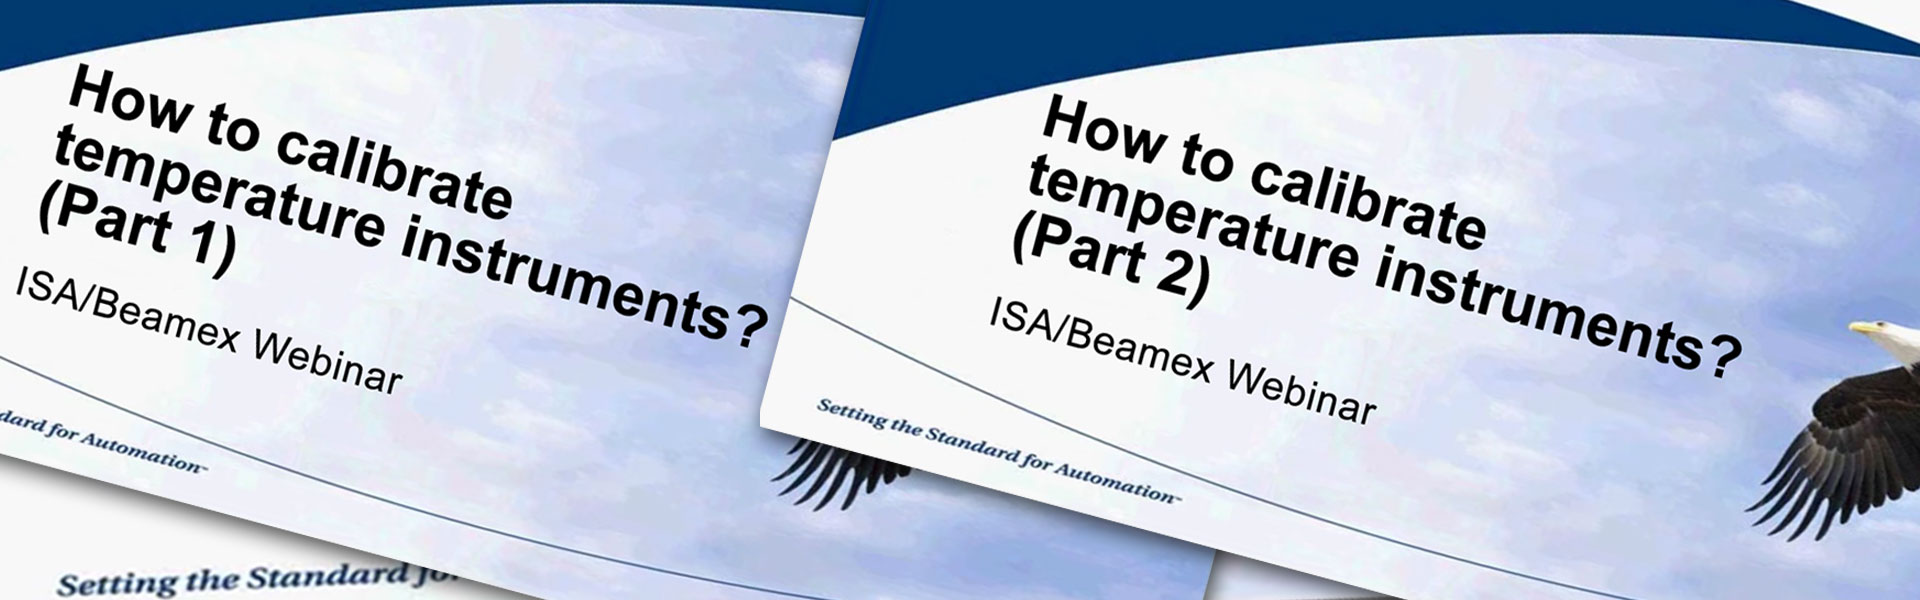 How to calibrate temperature instruments - Beamex blog post